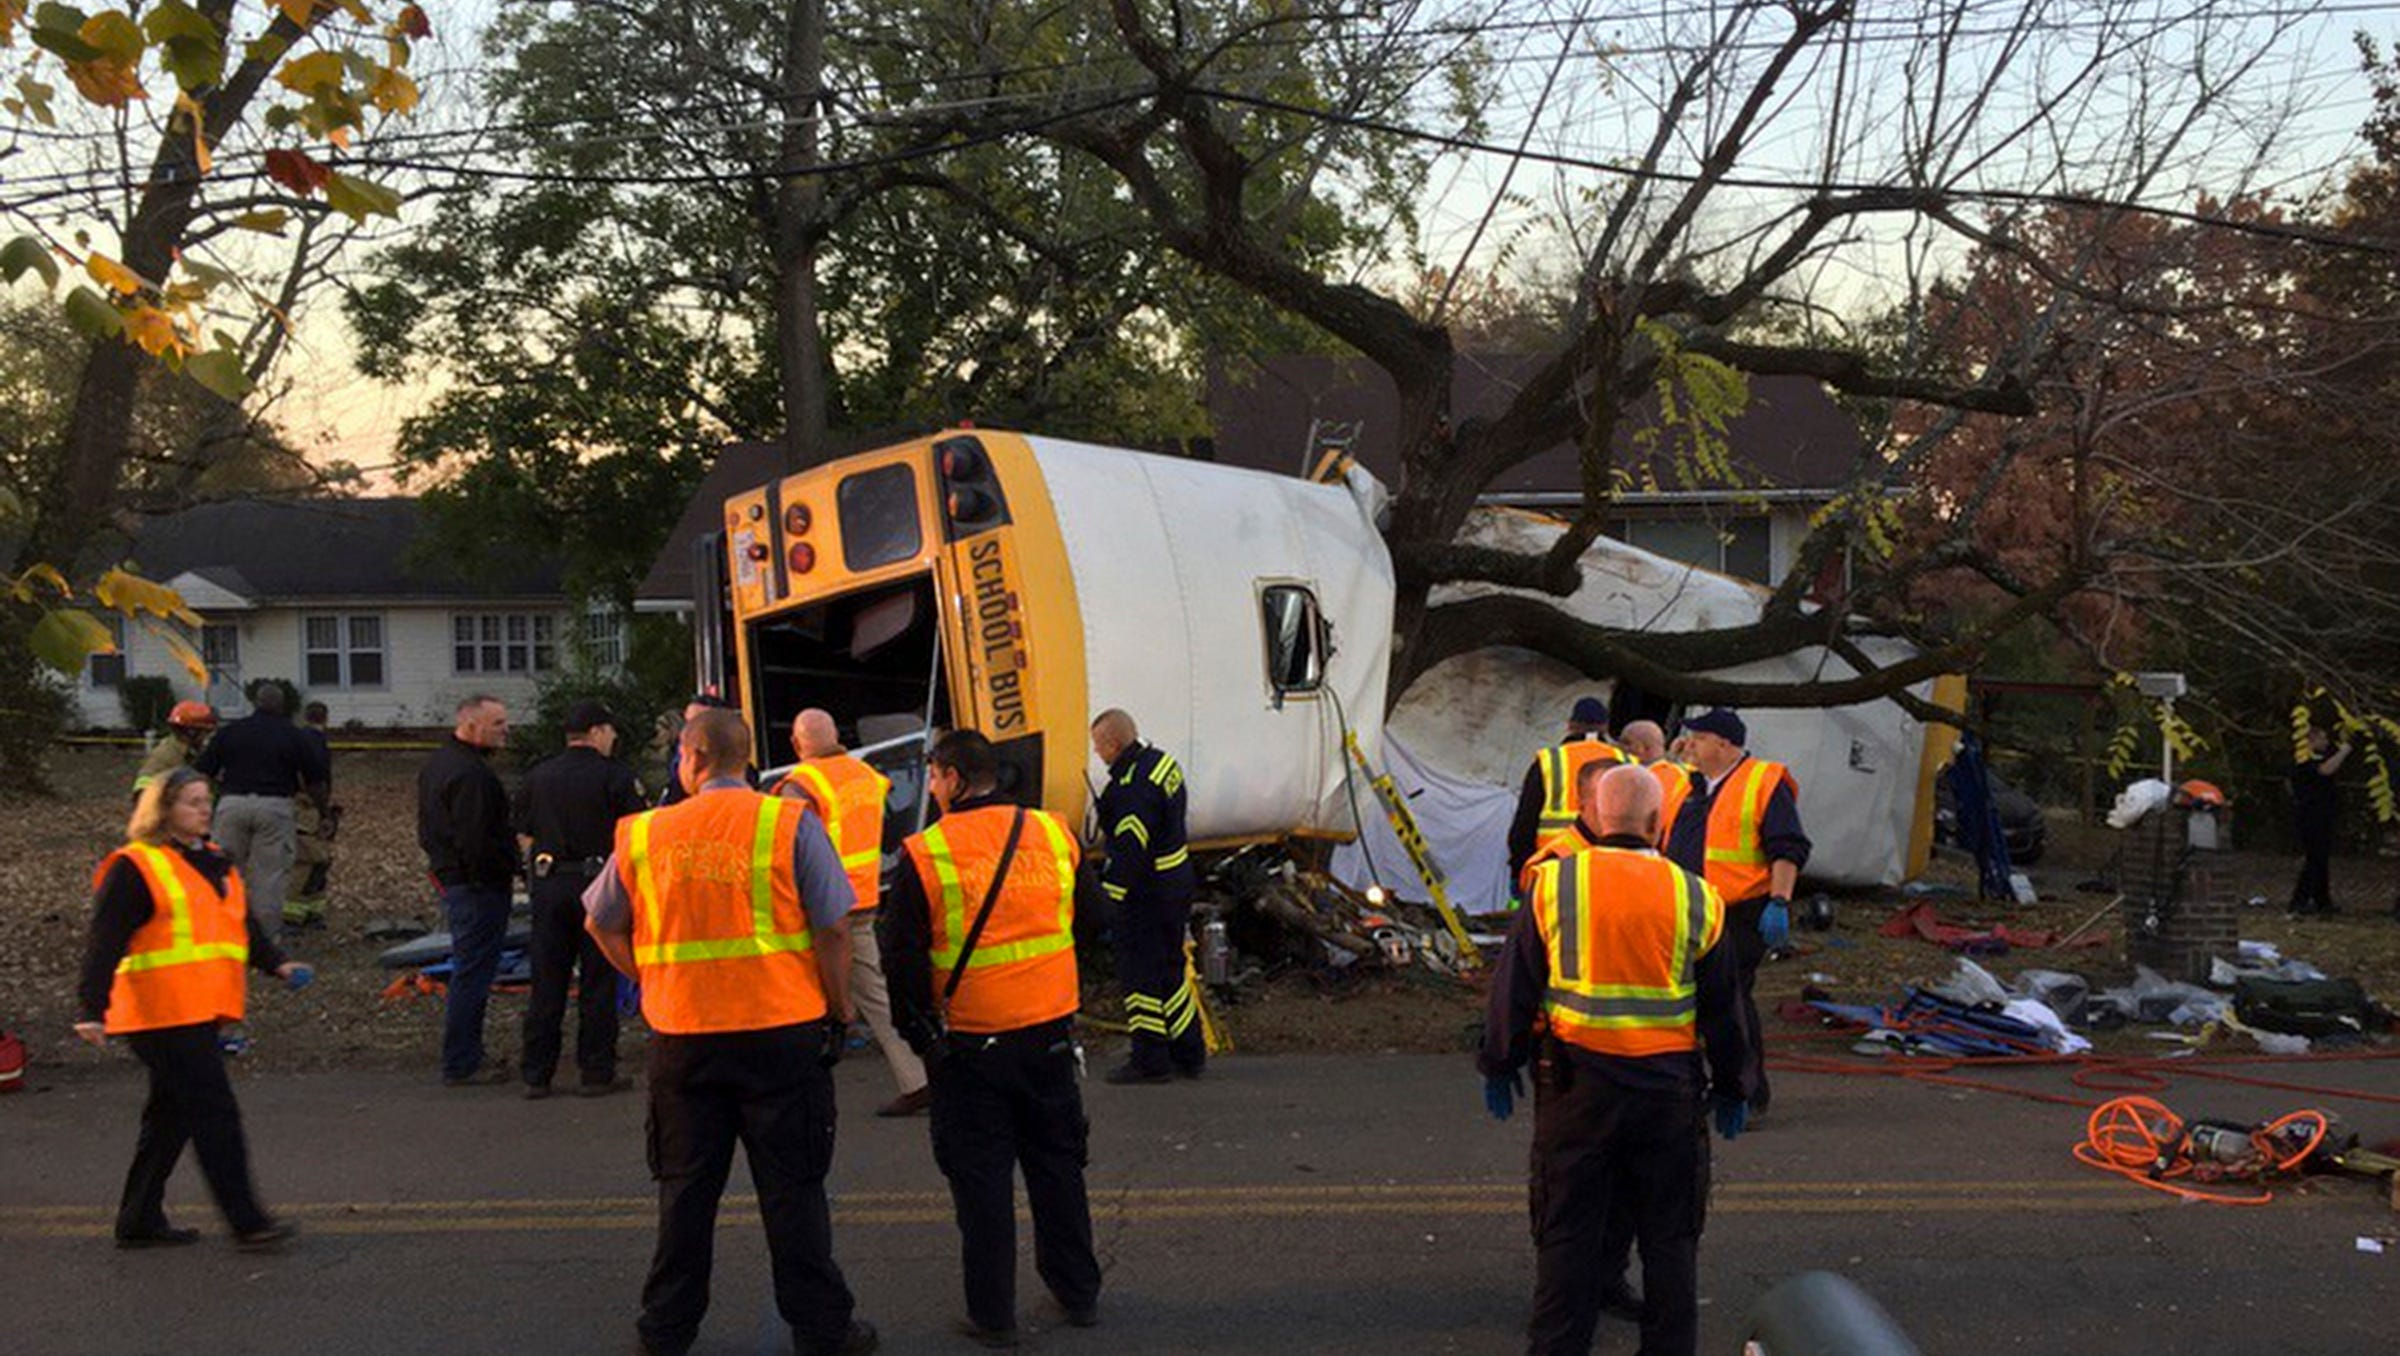 Bus Company At Center Of Fatal Wreck Had 142 Injury Crashes In 2 Years